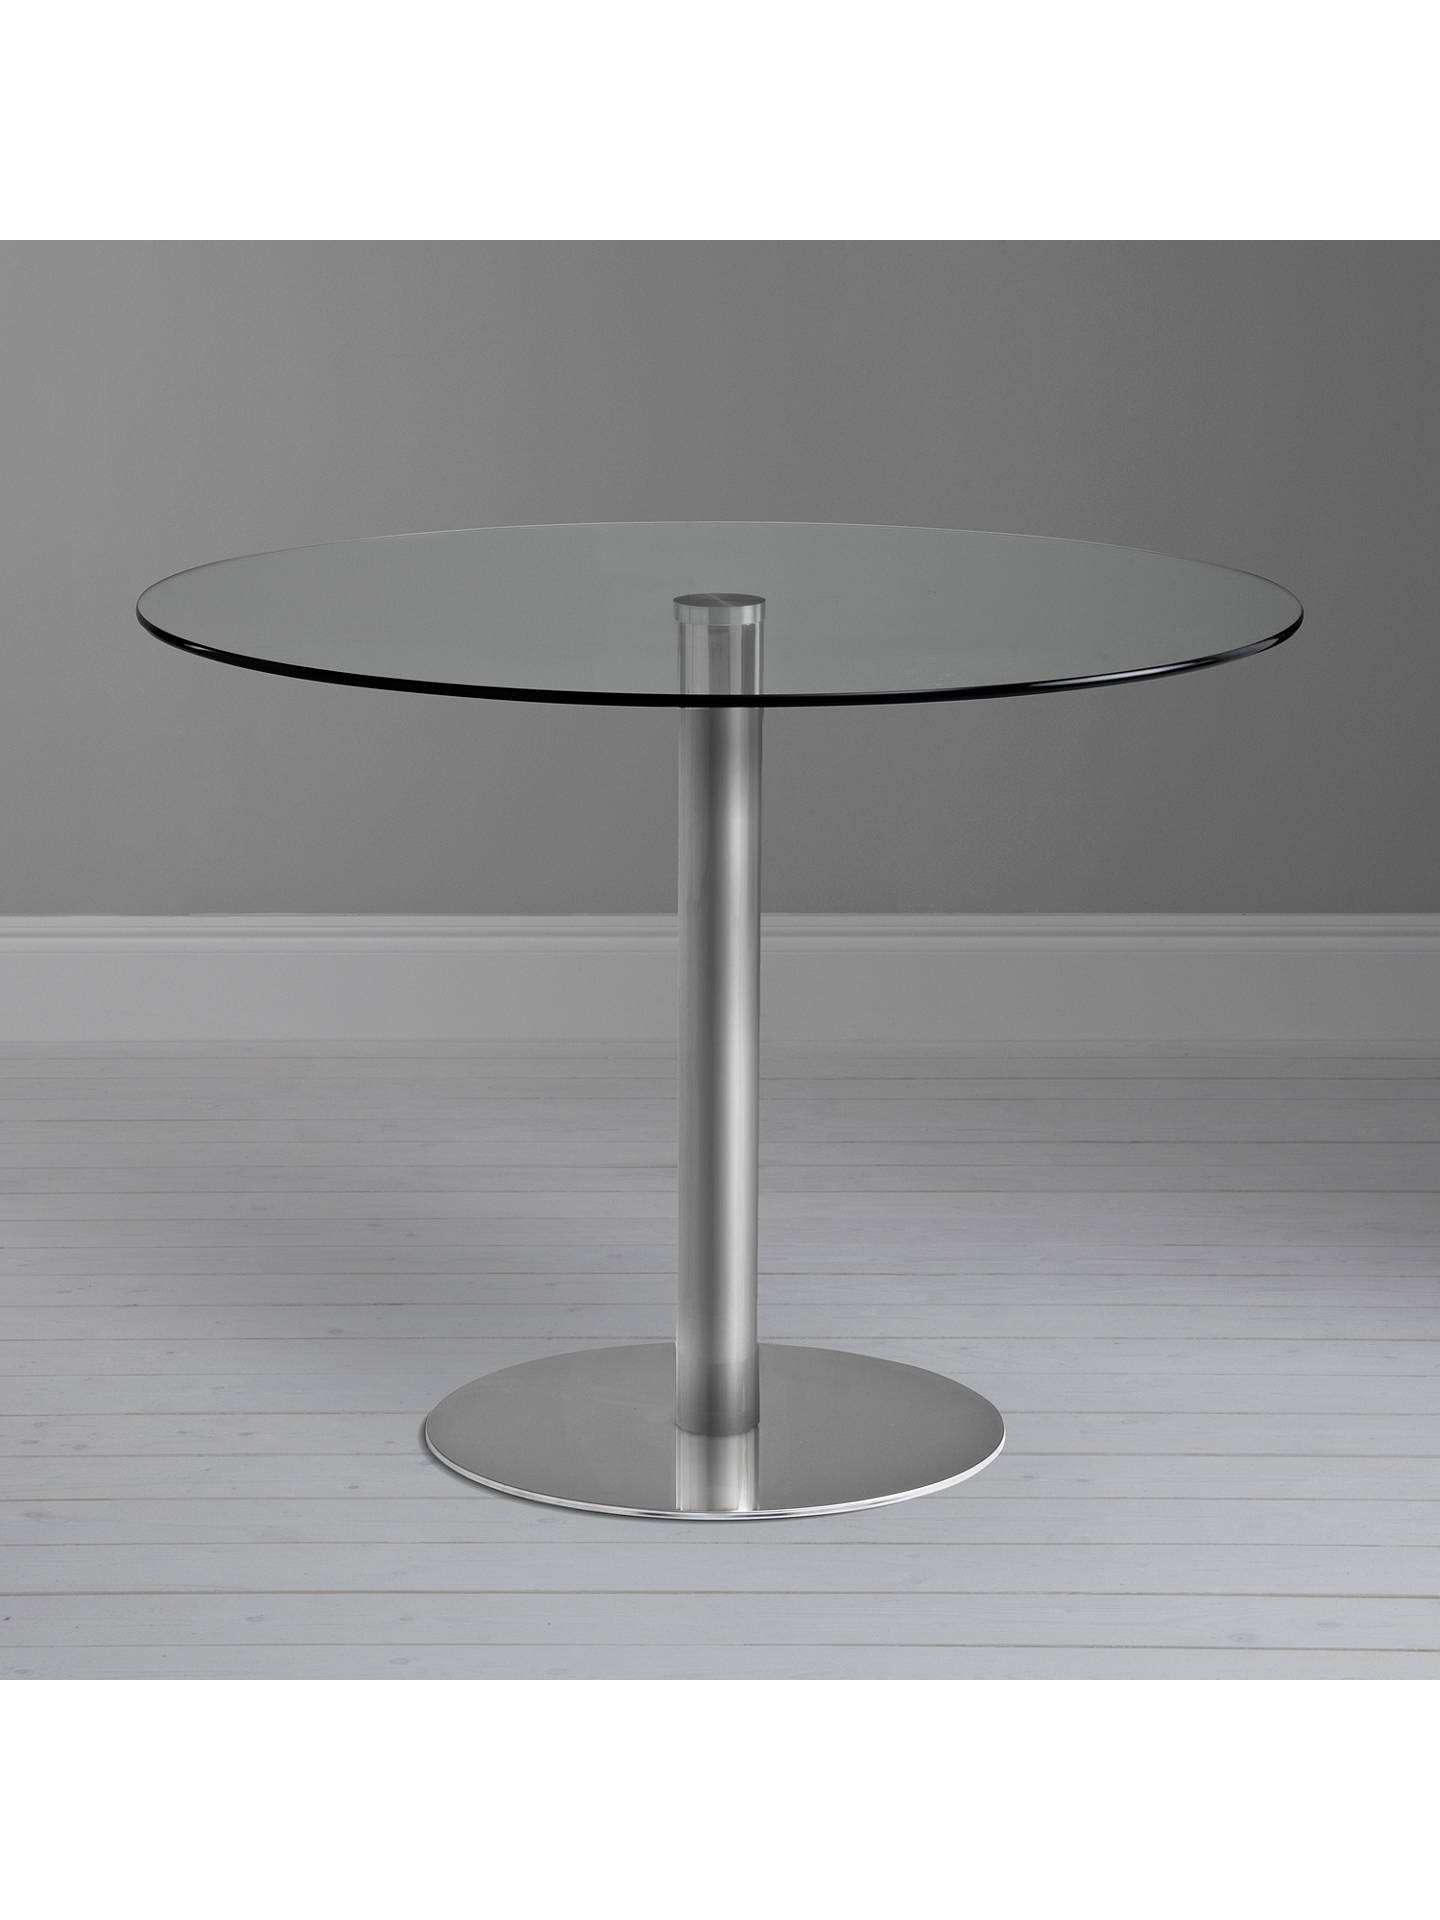 BuyJohn Lewis & Partners Enzo 4-Seater Round Glass Top Dining Table Online at johnlewis.com